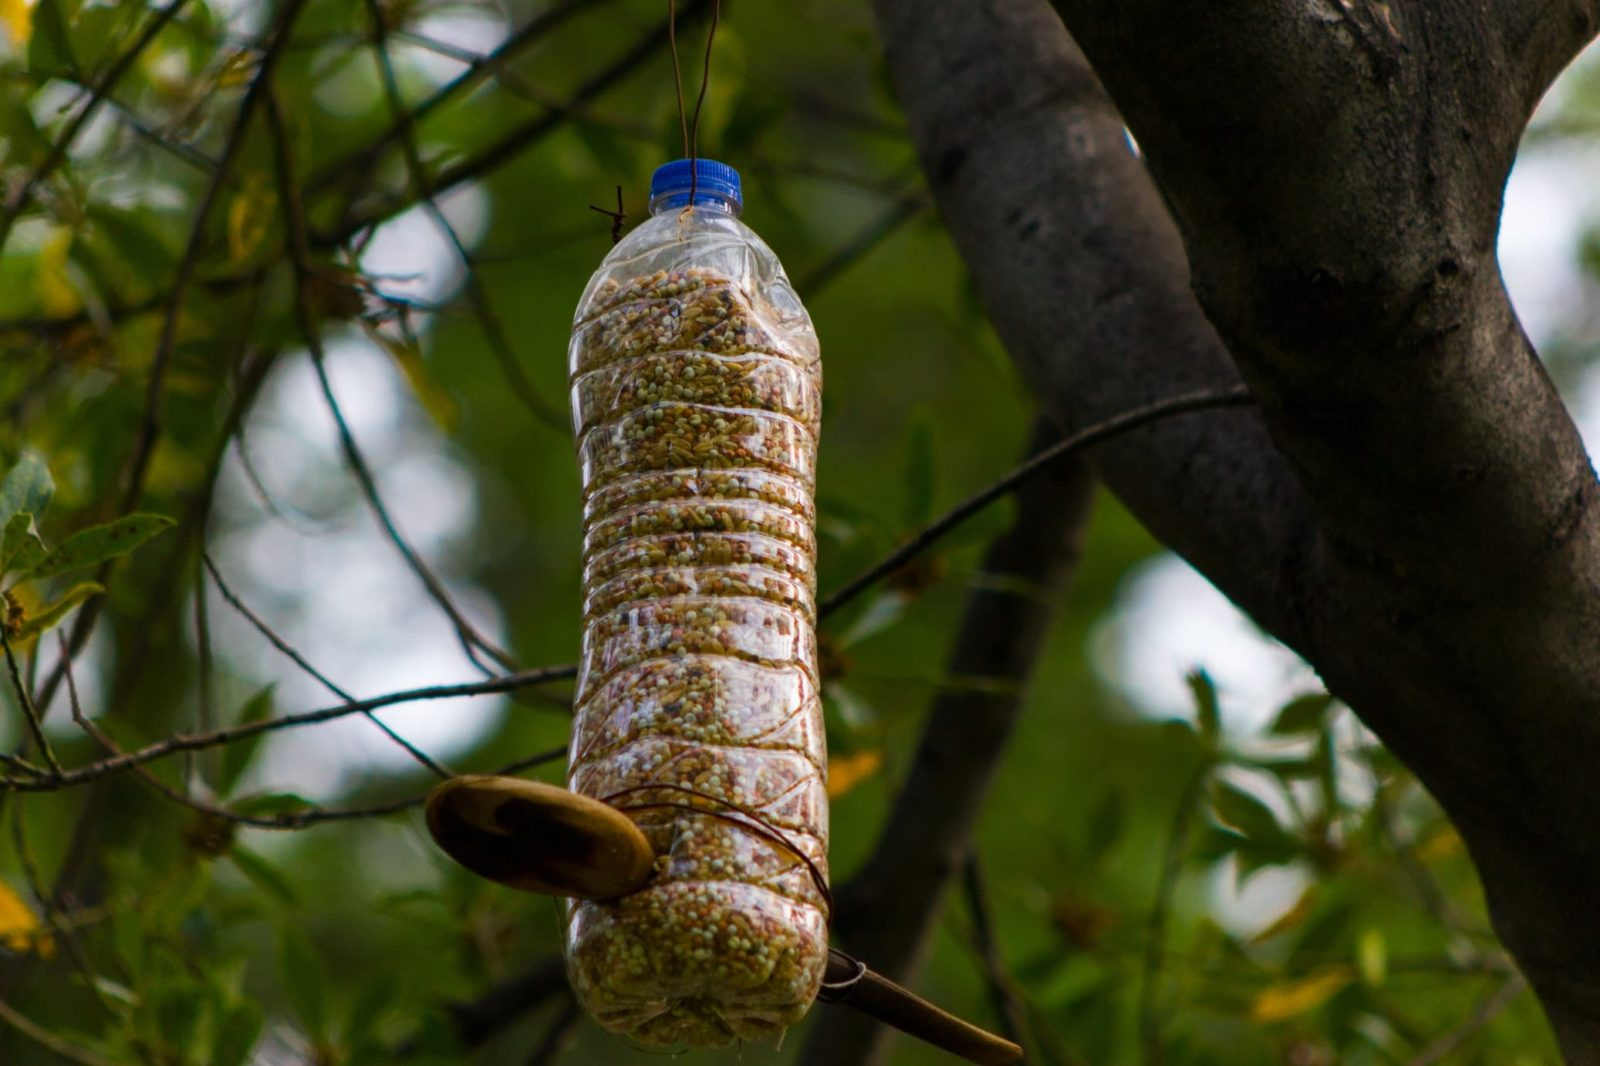 a homemade plastic bird feeder hanging from a tree branch